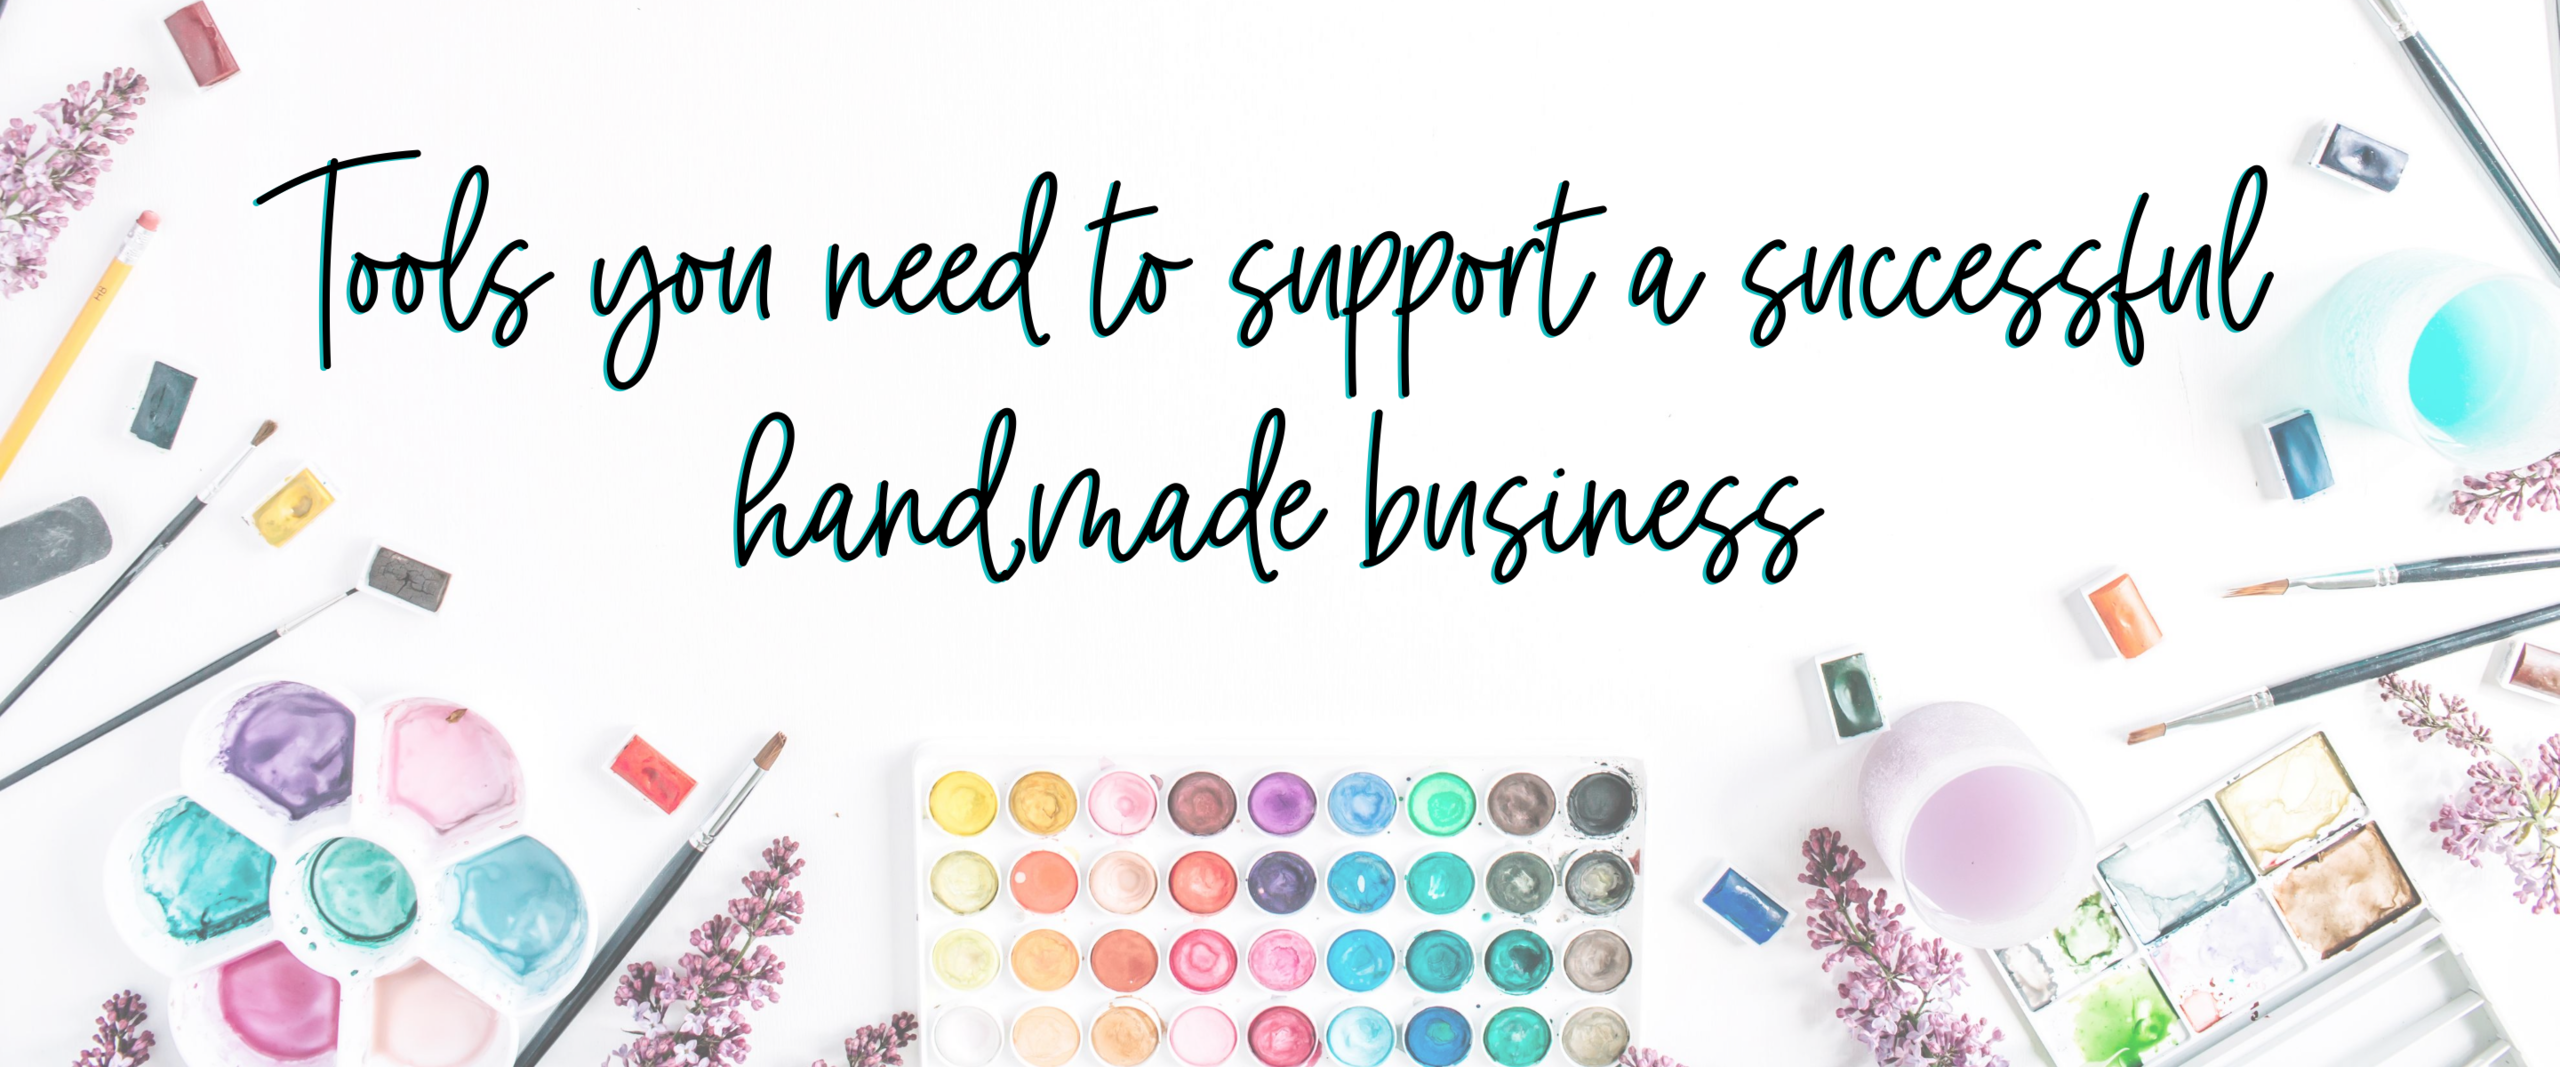 Tools you need to support a successful handmade business